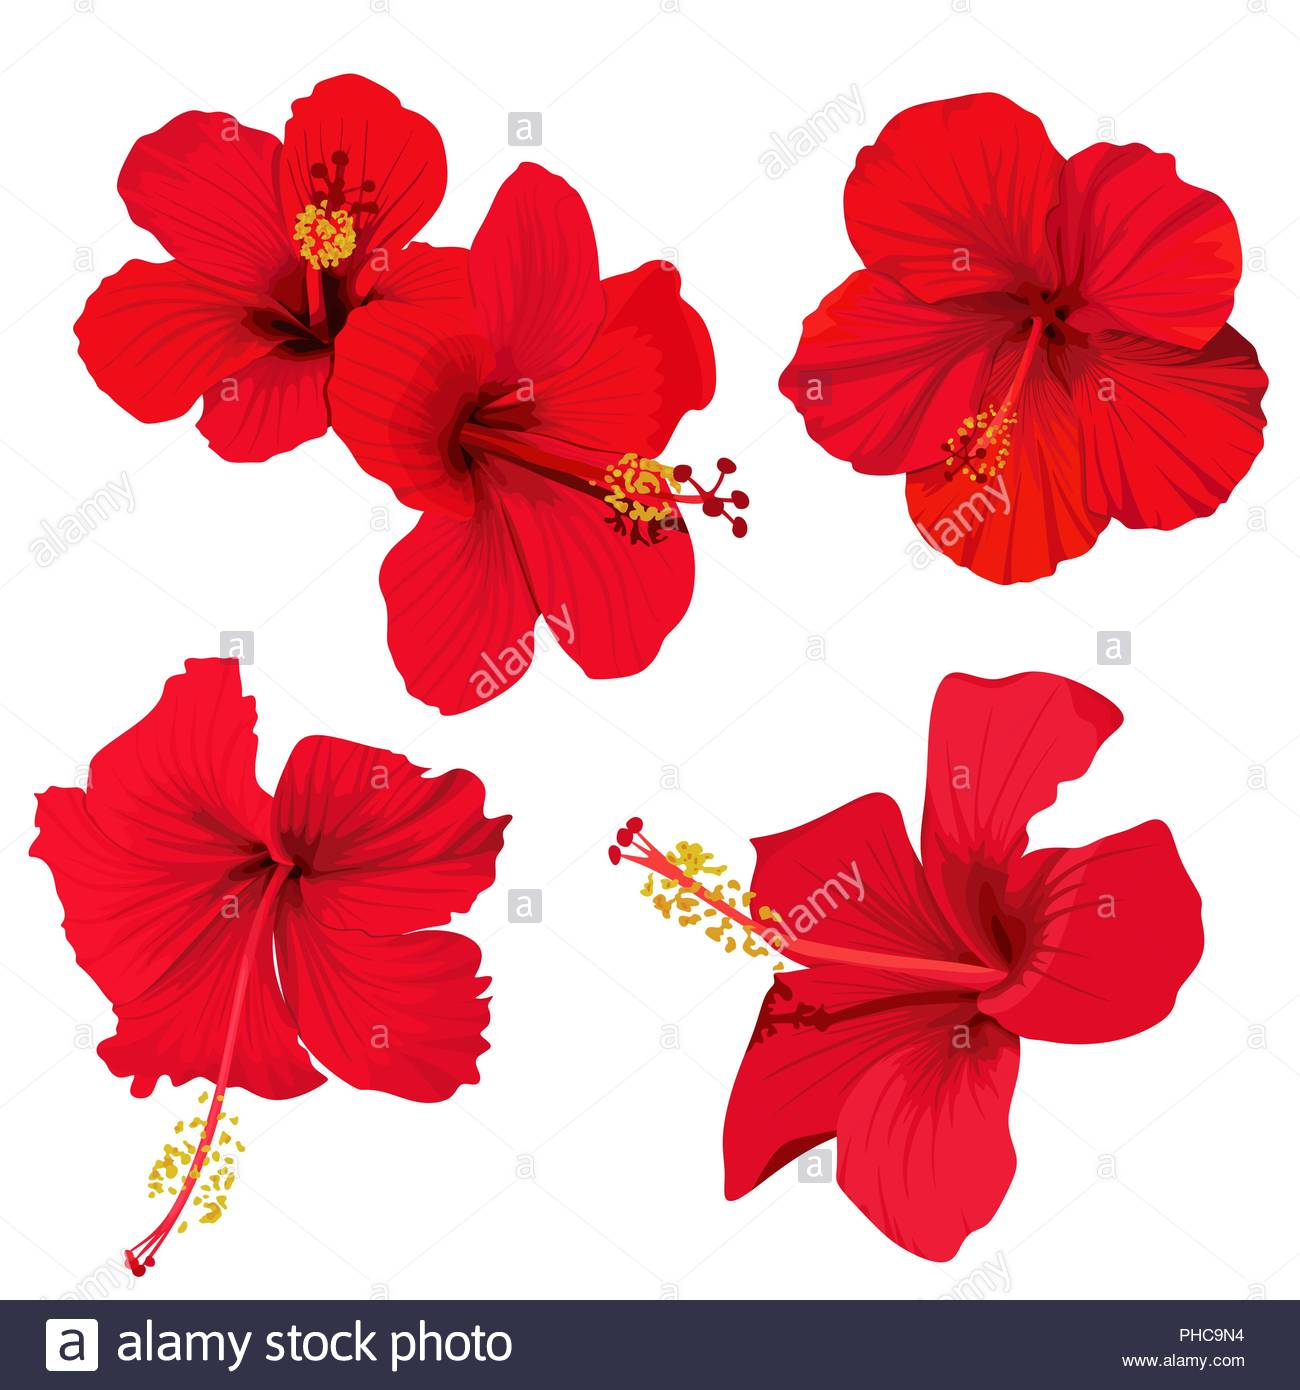 hibiscus flower vector clip art set red flowers tropical planrs.